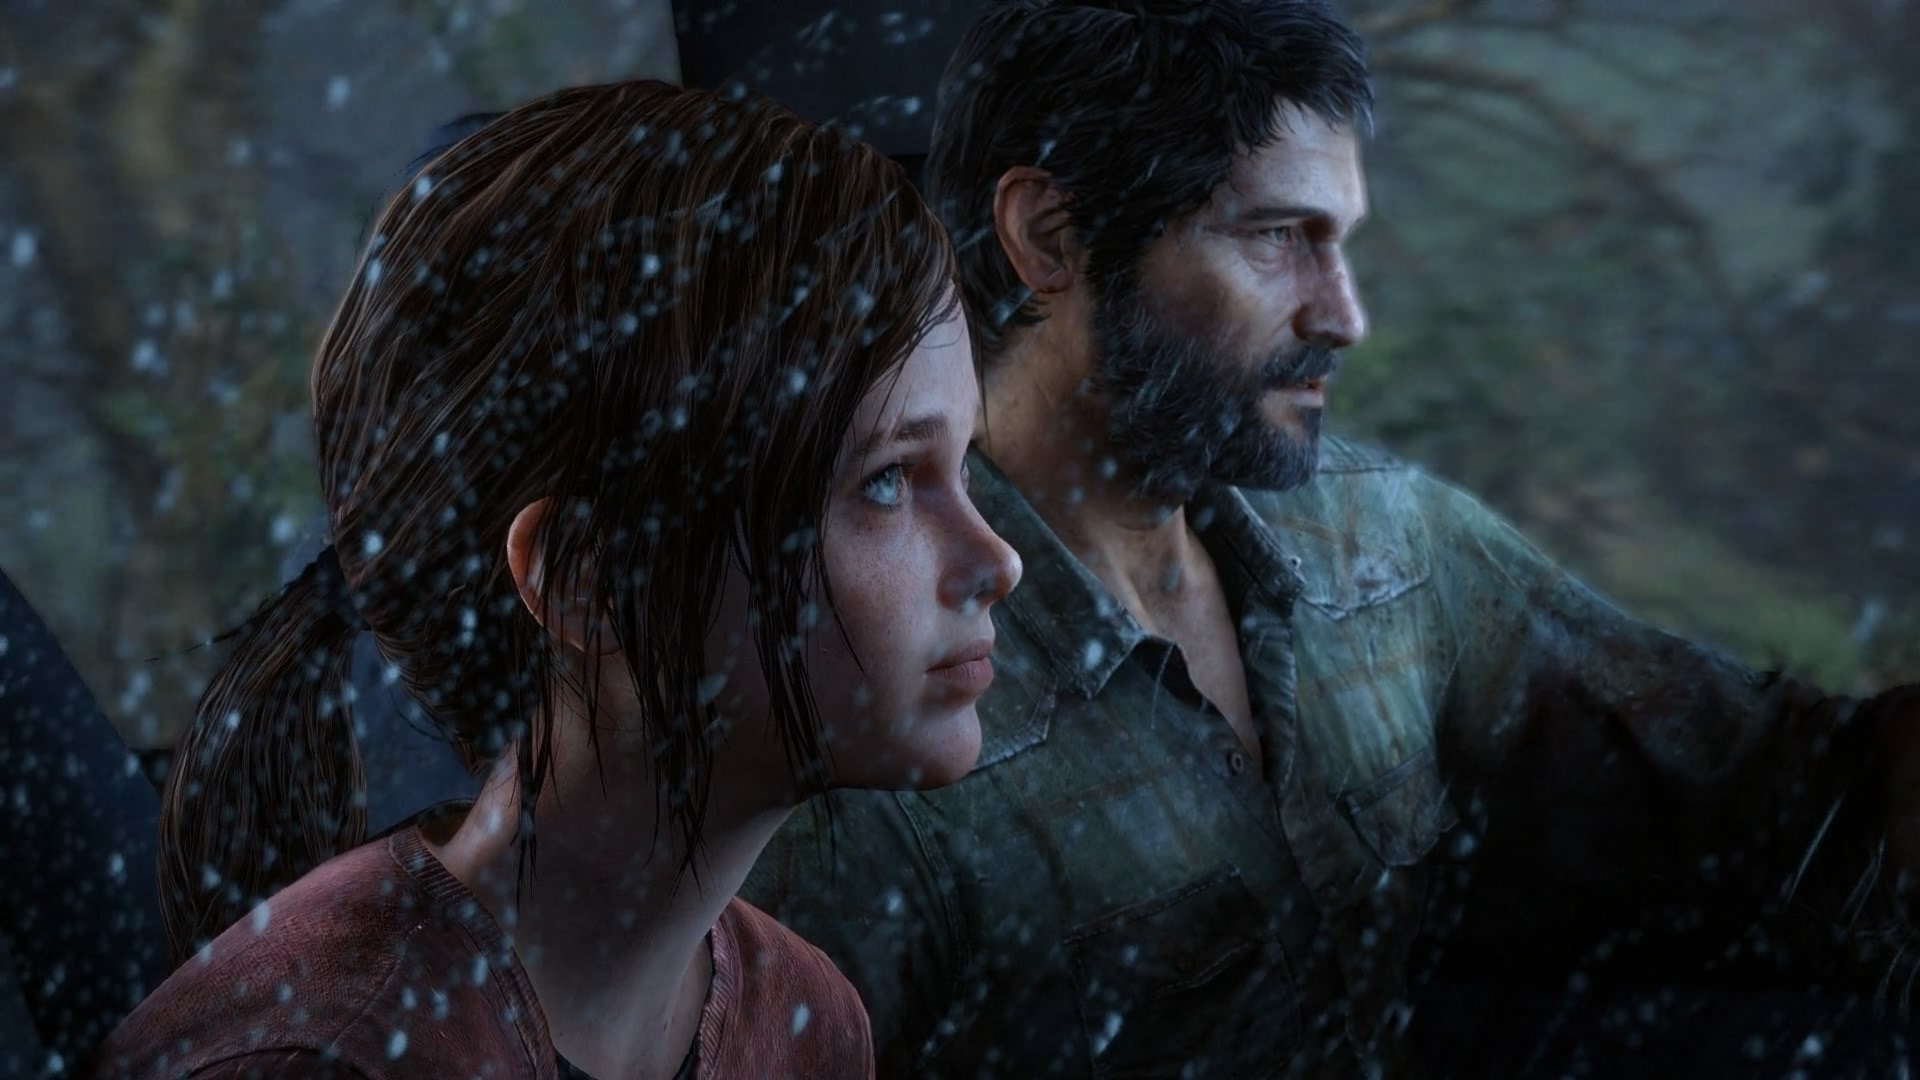 The Last of Us Part II HD Wallpaper 17   1920 X 1080 stmednet 1920x1080